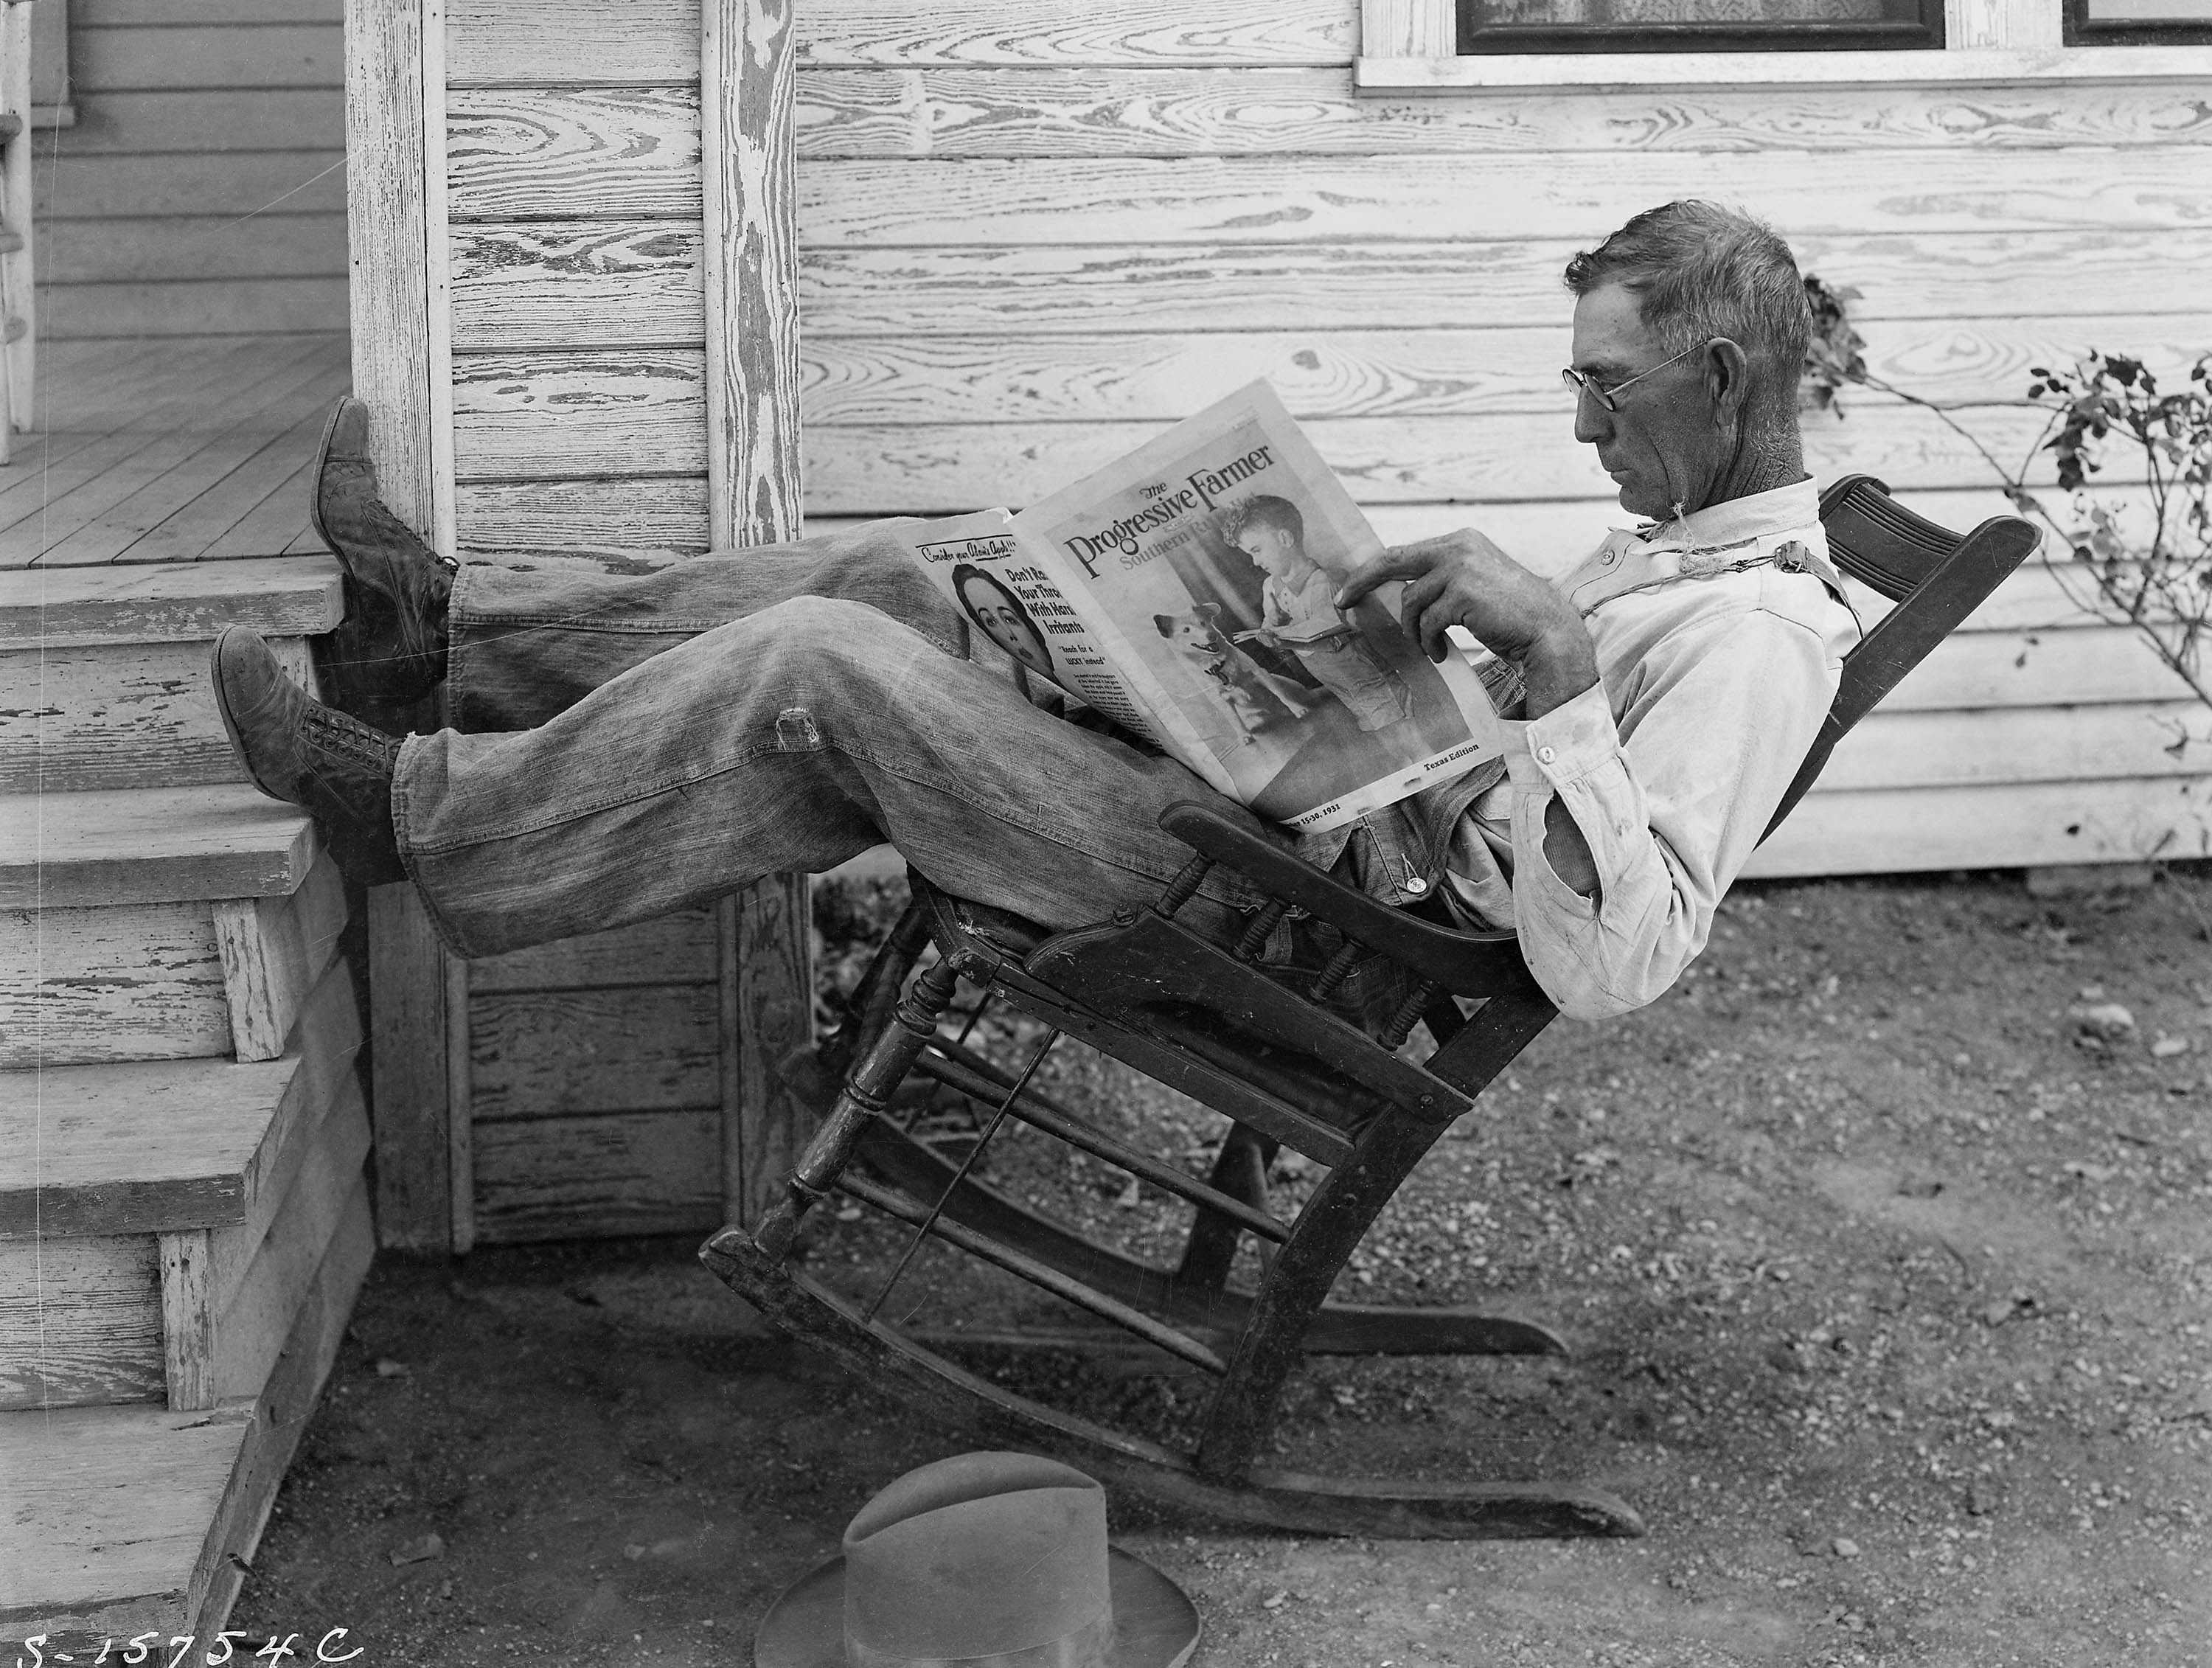 Old photograph of a man sitting on a reclining chair reading a newspaper